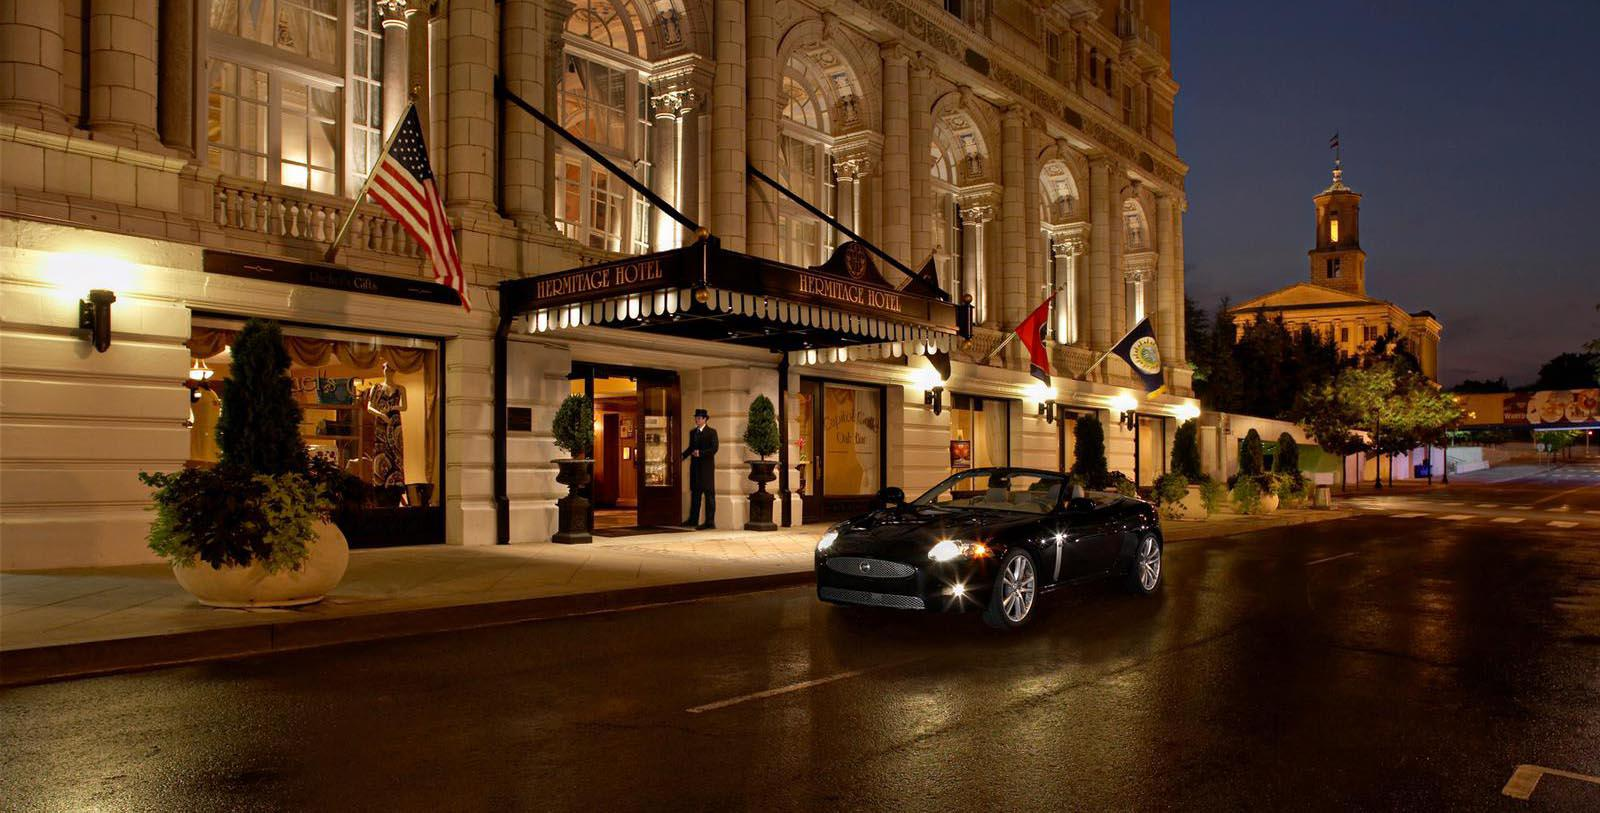 Image of Entrance with Car The Hermitage Hotel, 1910, Member of Historic Hotels of America, in Nashville, Tennessee, Special Offers, Discounted Rates, Families, Romantic Escape, Honeymoons, Anniversaries, Reunions